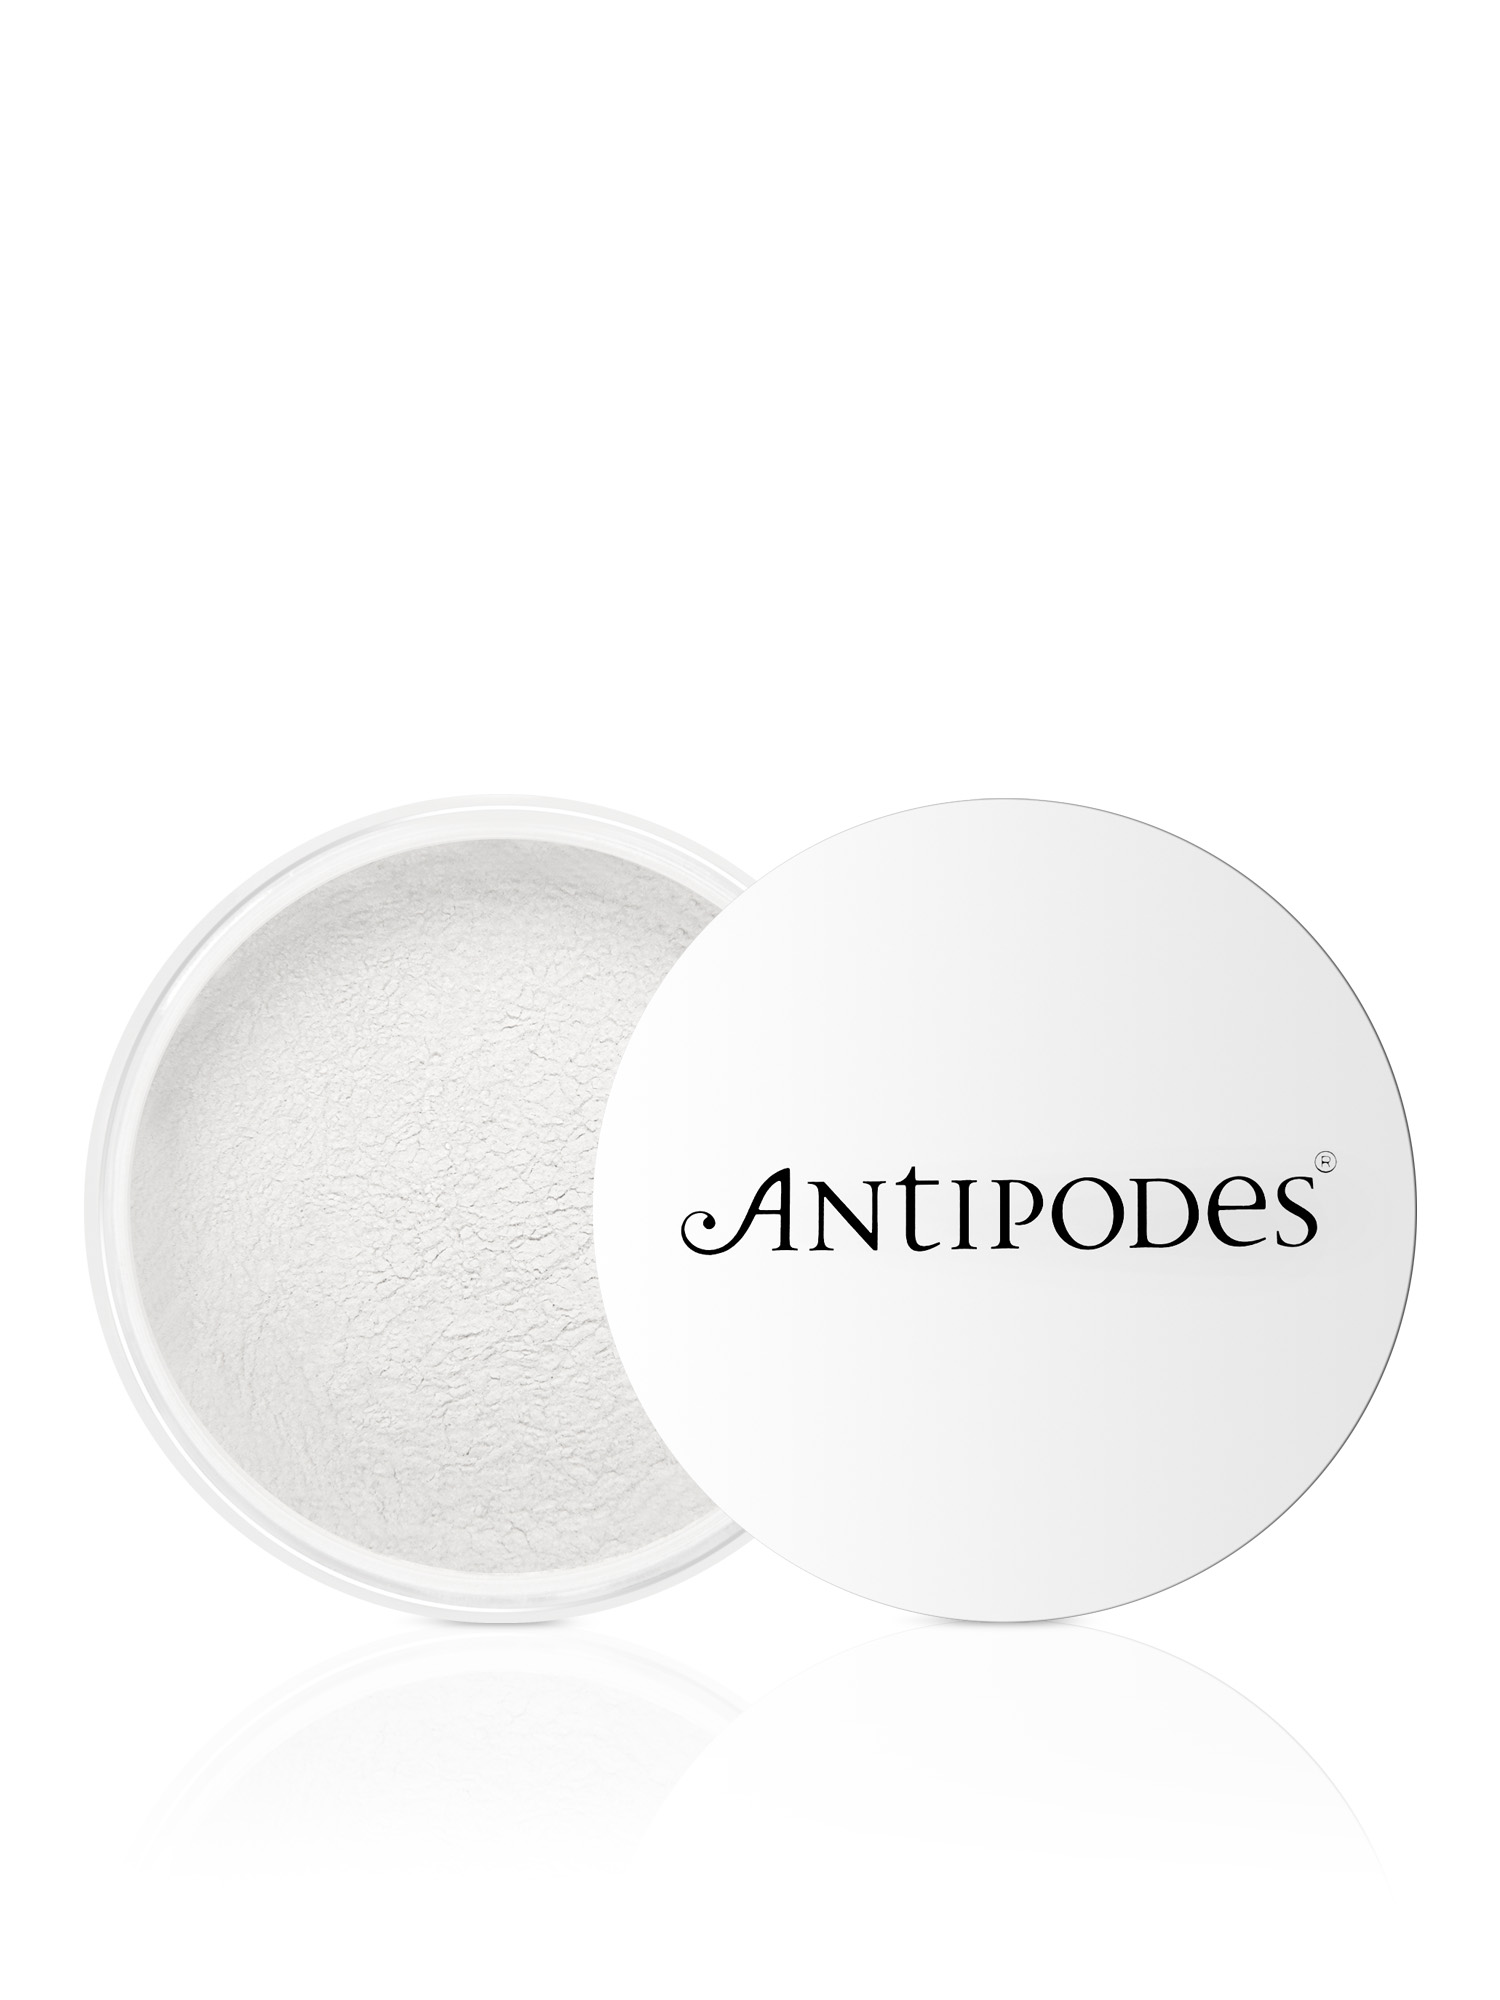 Antipodes Performance Plus Skin-Brightening Mineral Finishing Powder